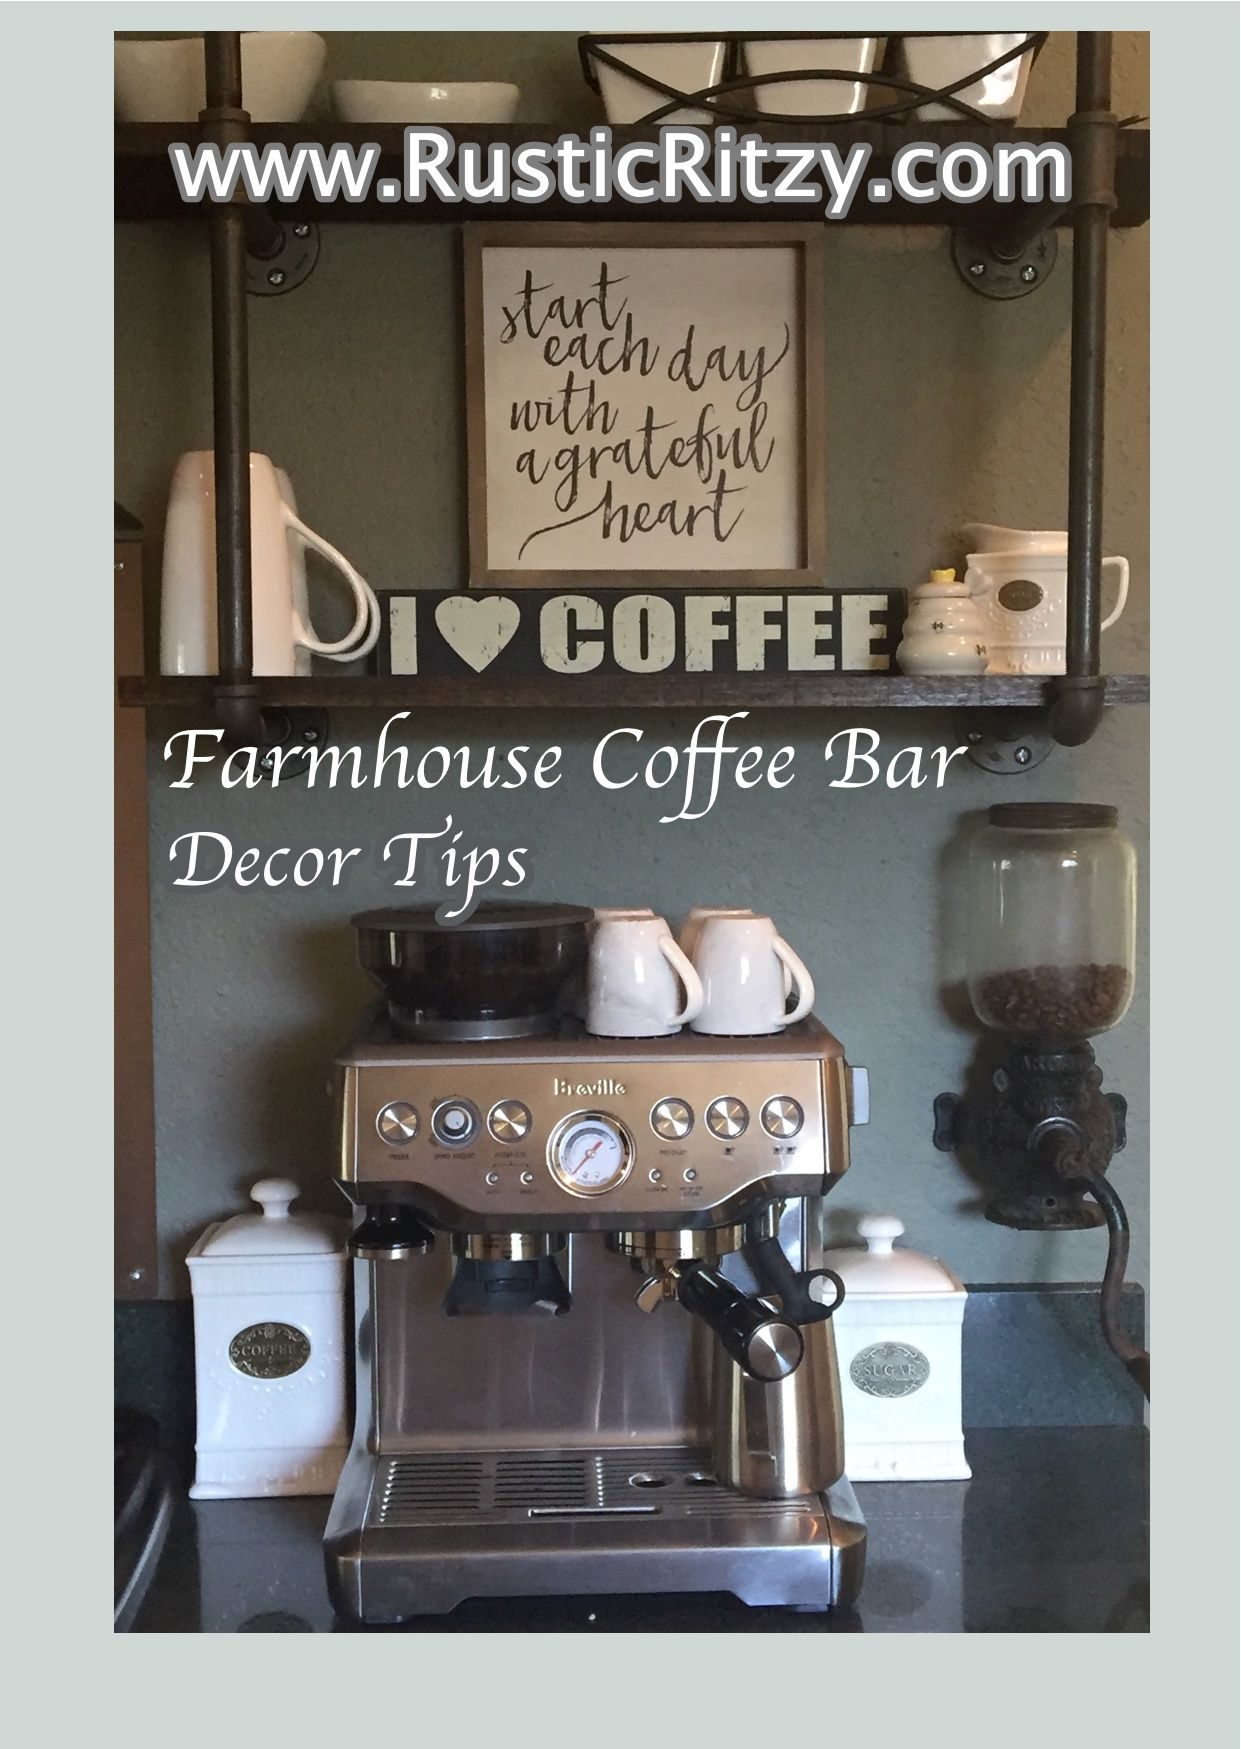 Farmhouse Coffee Shop Farmhouse Coffee Bar Decor Tips And Tricks Espresso Machine